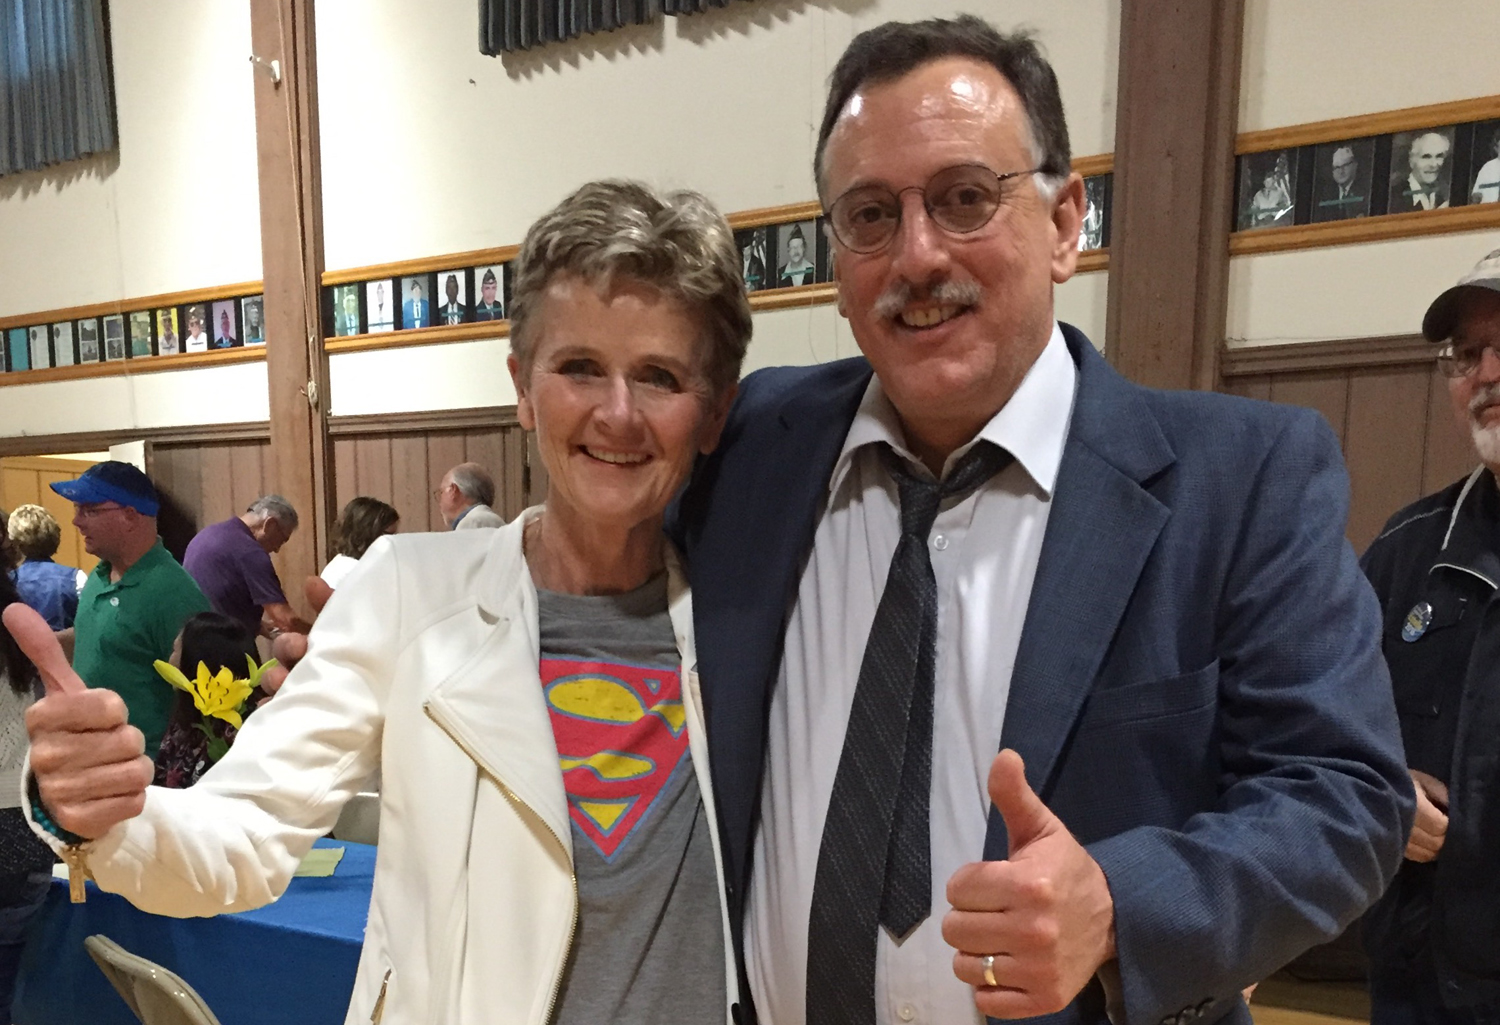 Supervisor Estelle Fennell, shown with supporter Nick Angeloff, celebrated election night at the Fortuna Veterans Memorial Building. (Photo courtesy of Estelle Fennell)